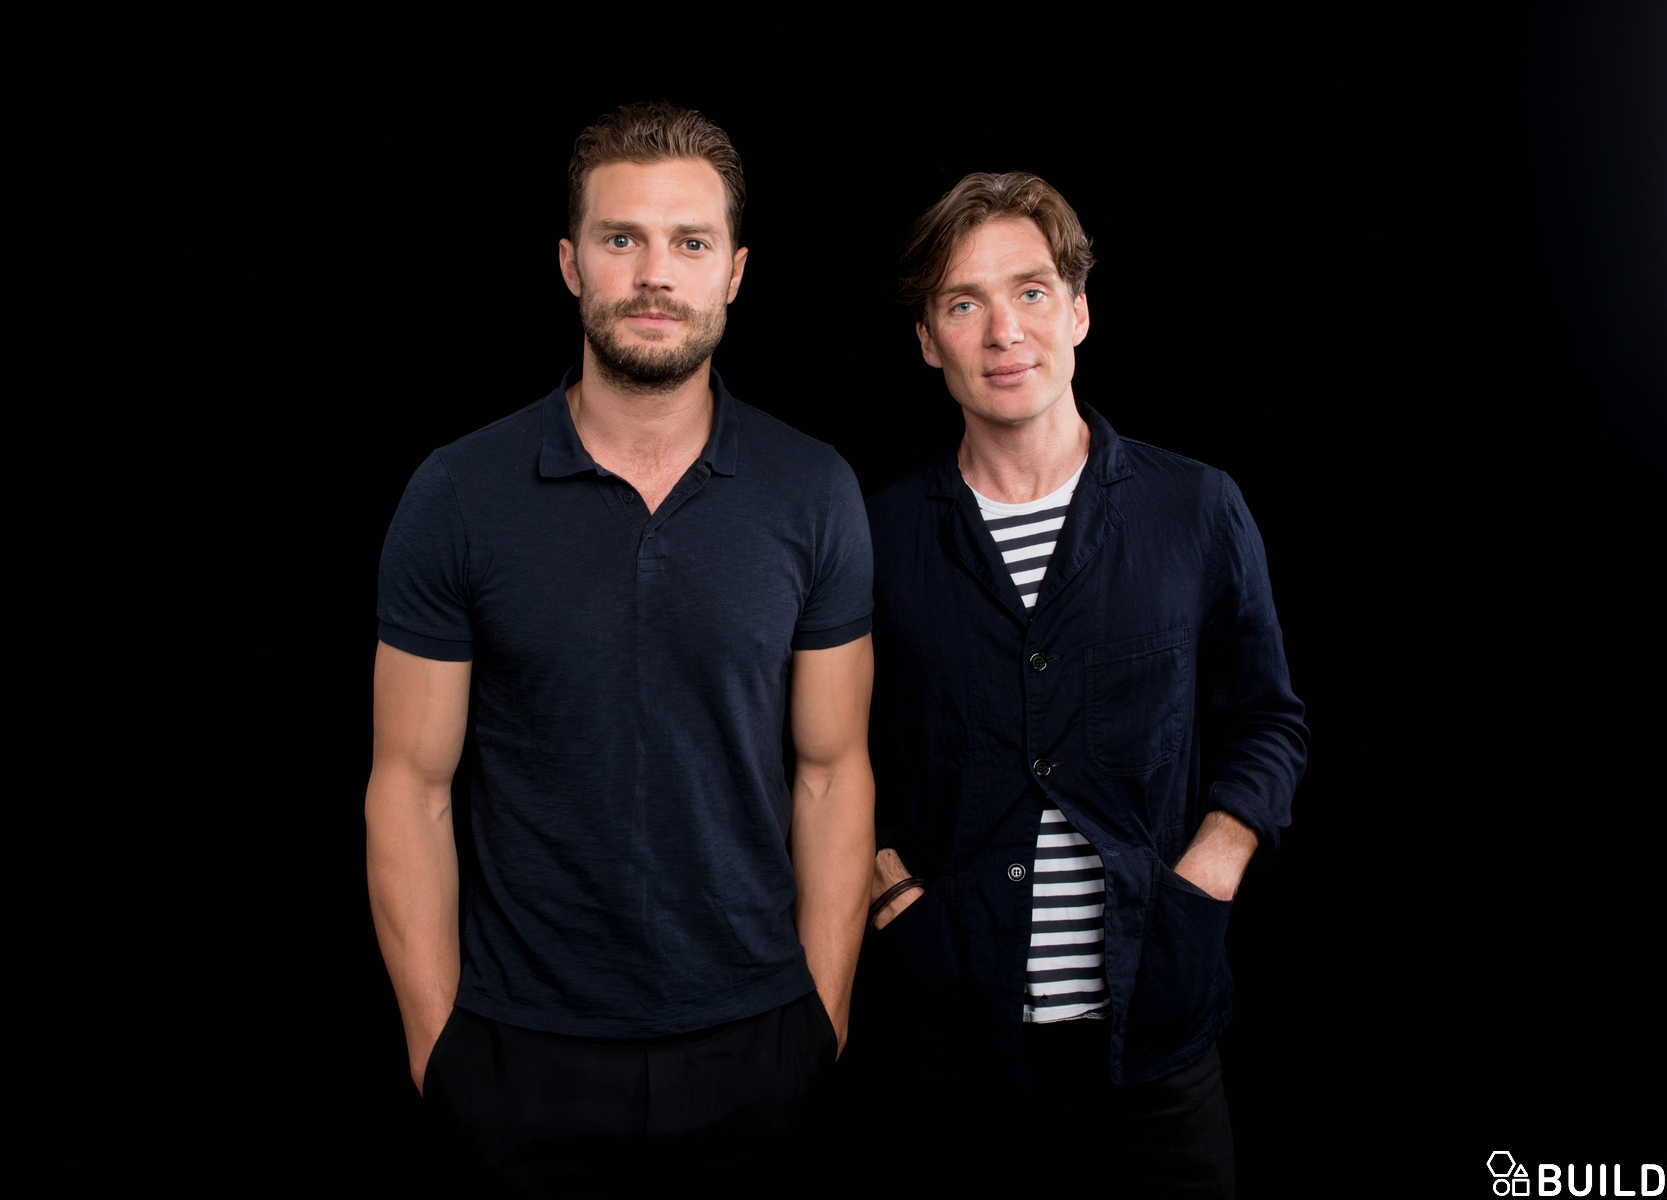 Cillian Murphy, Jamie Dornan and Sean Ellis visit AOL Hq for Build on August 5, 2016 in New York. Photos by Noam Galai